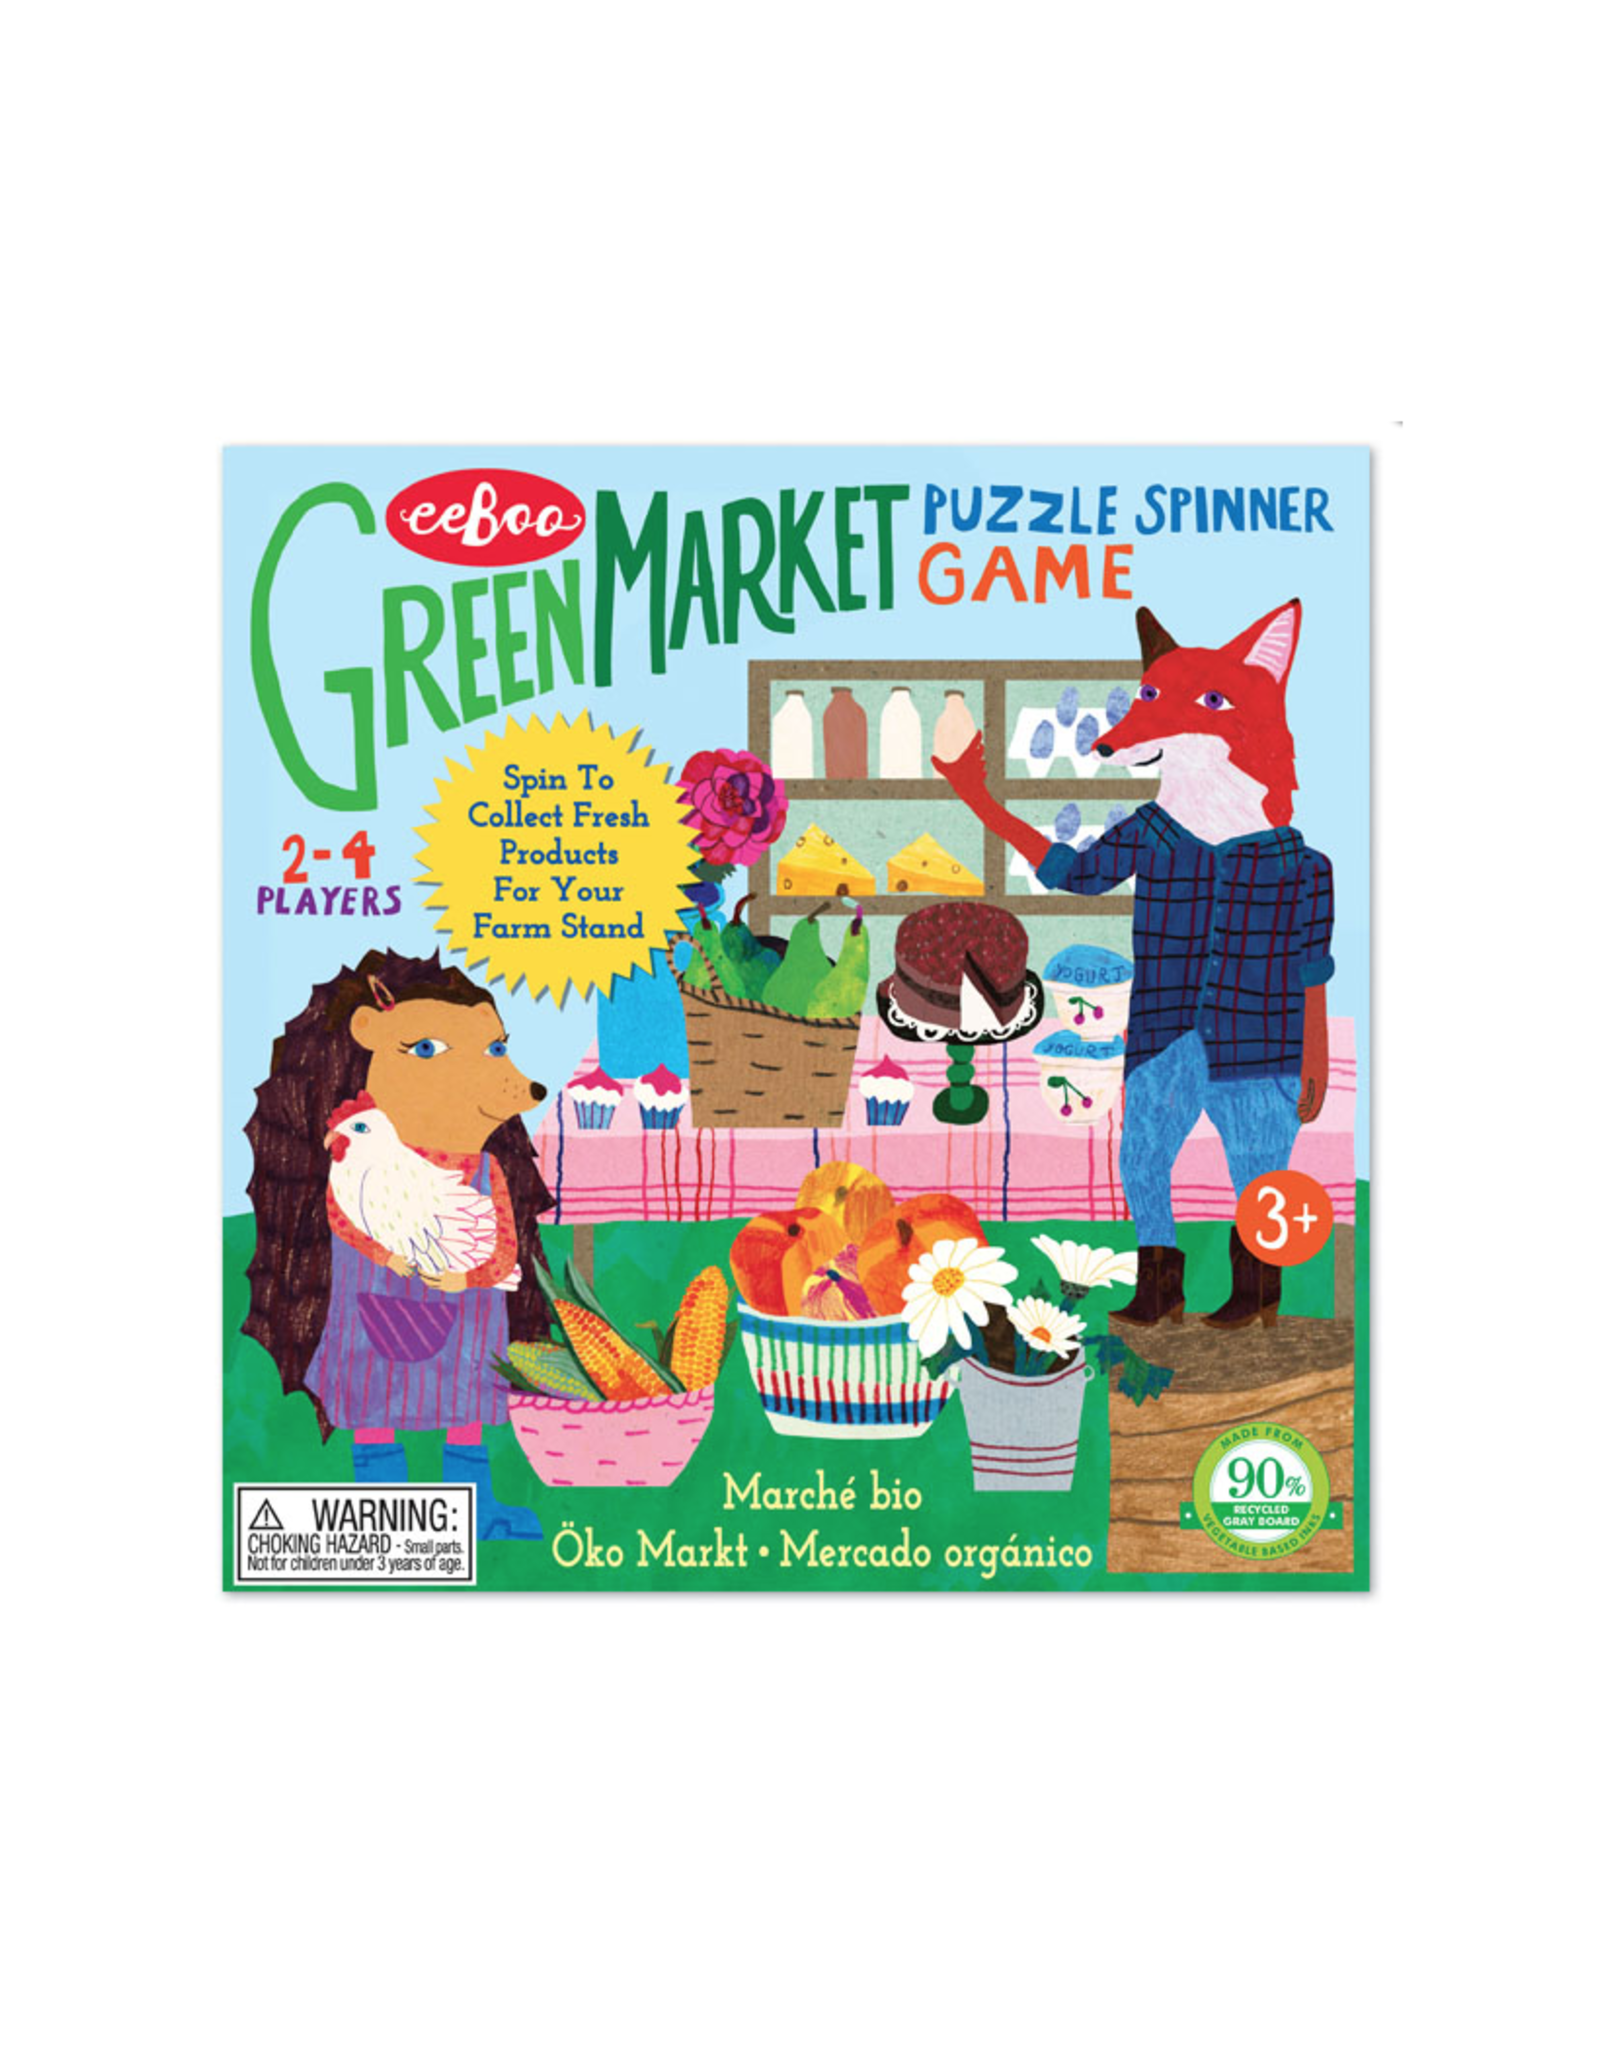 eeBoo Green Market Puzzle Spinner Game